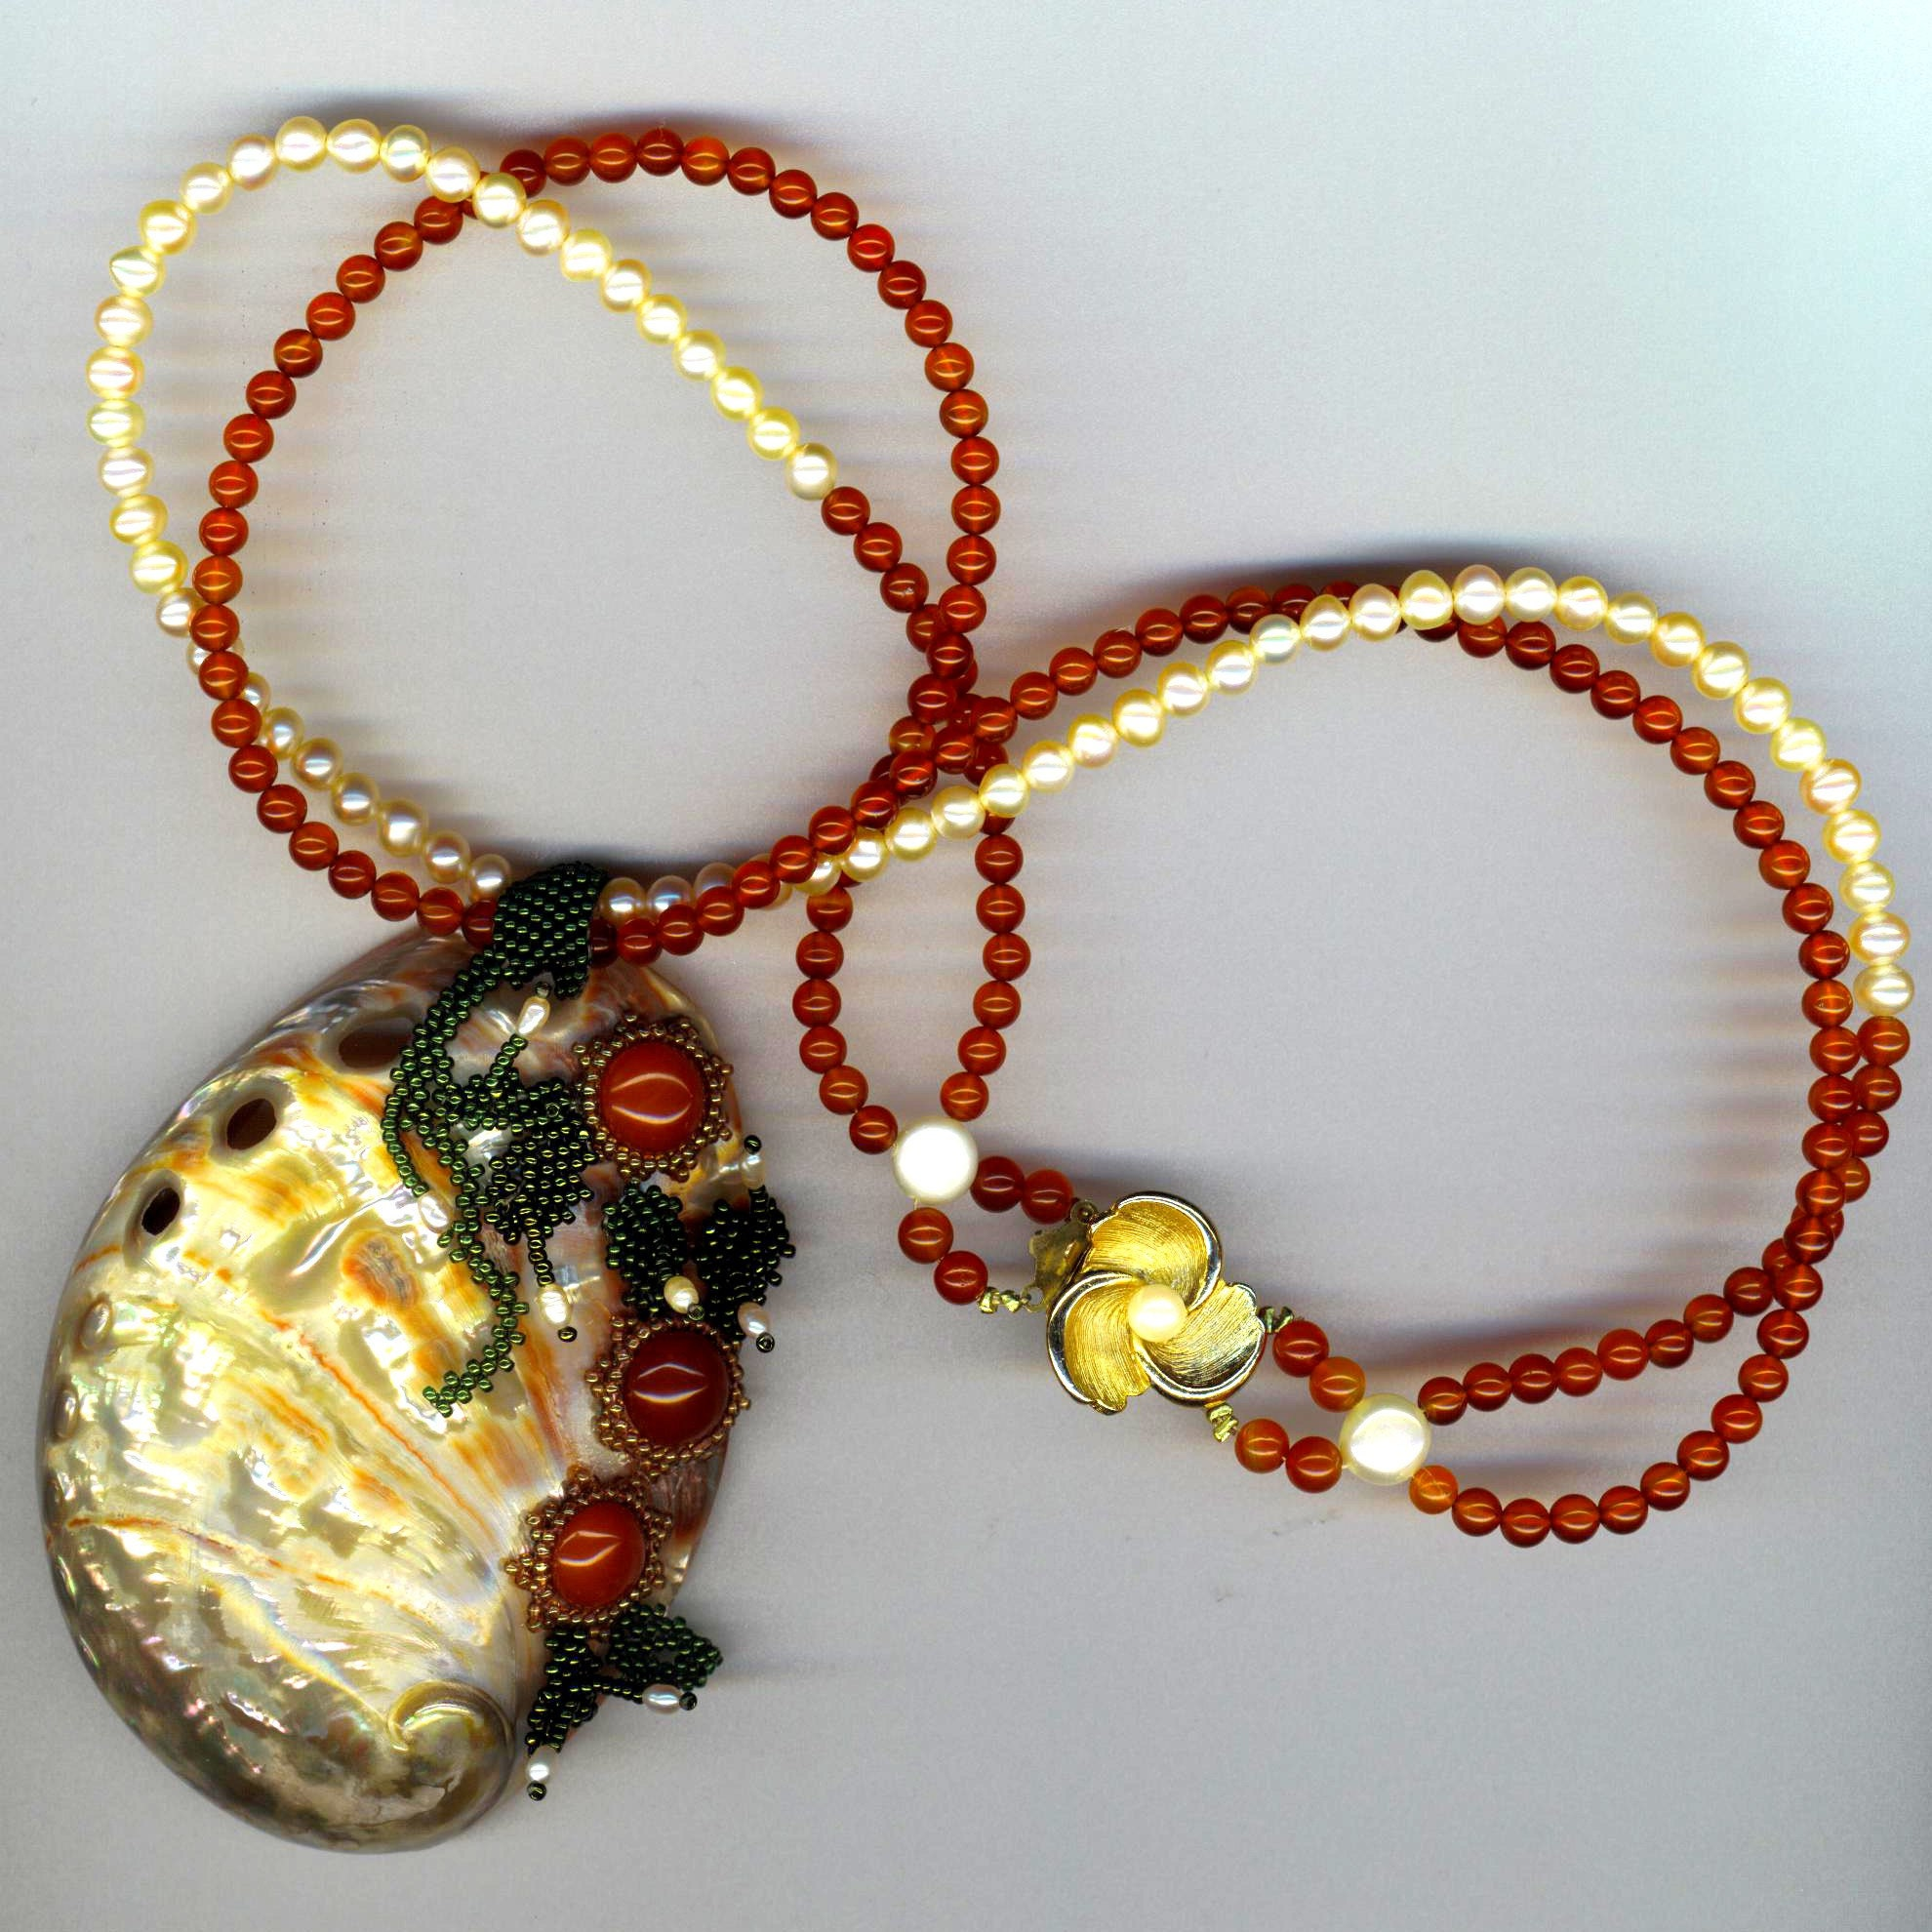 Indian Summer Dream - Pearls and Carnelian Necklace with Shell Pendant